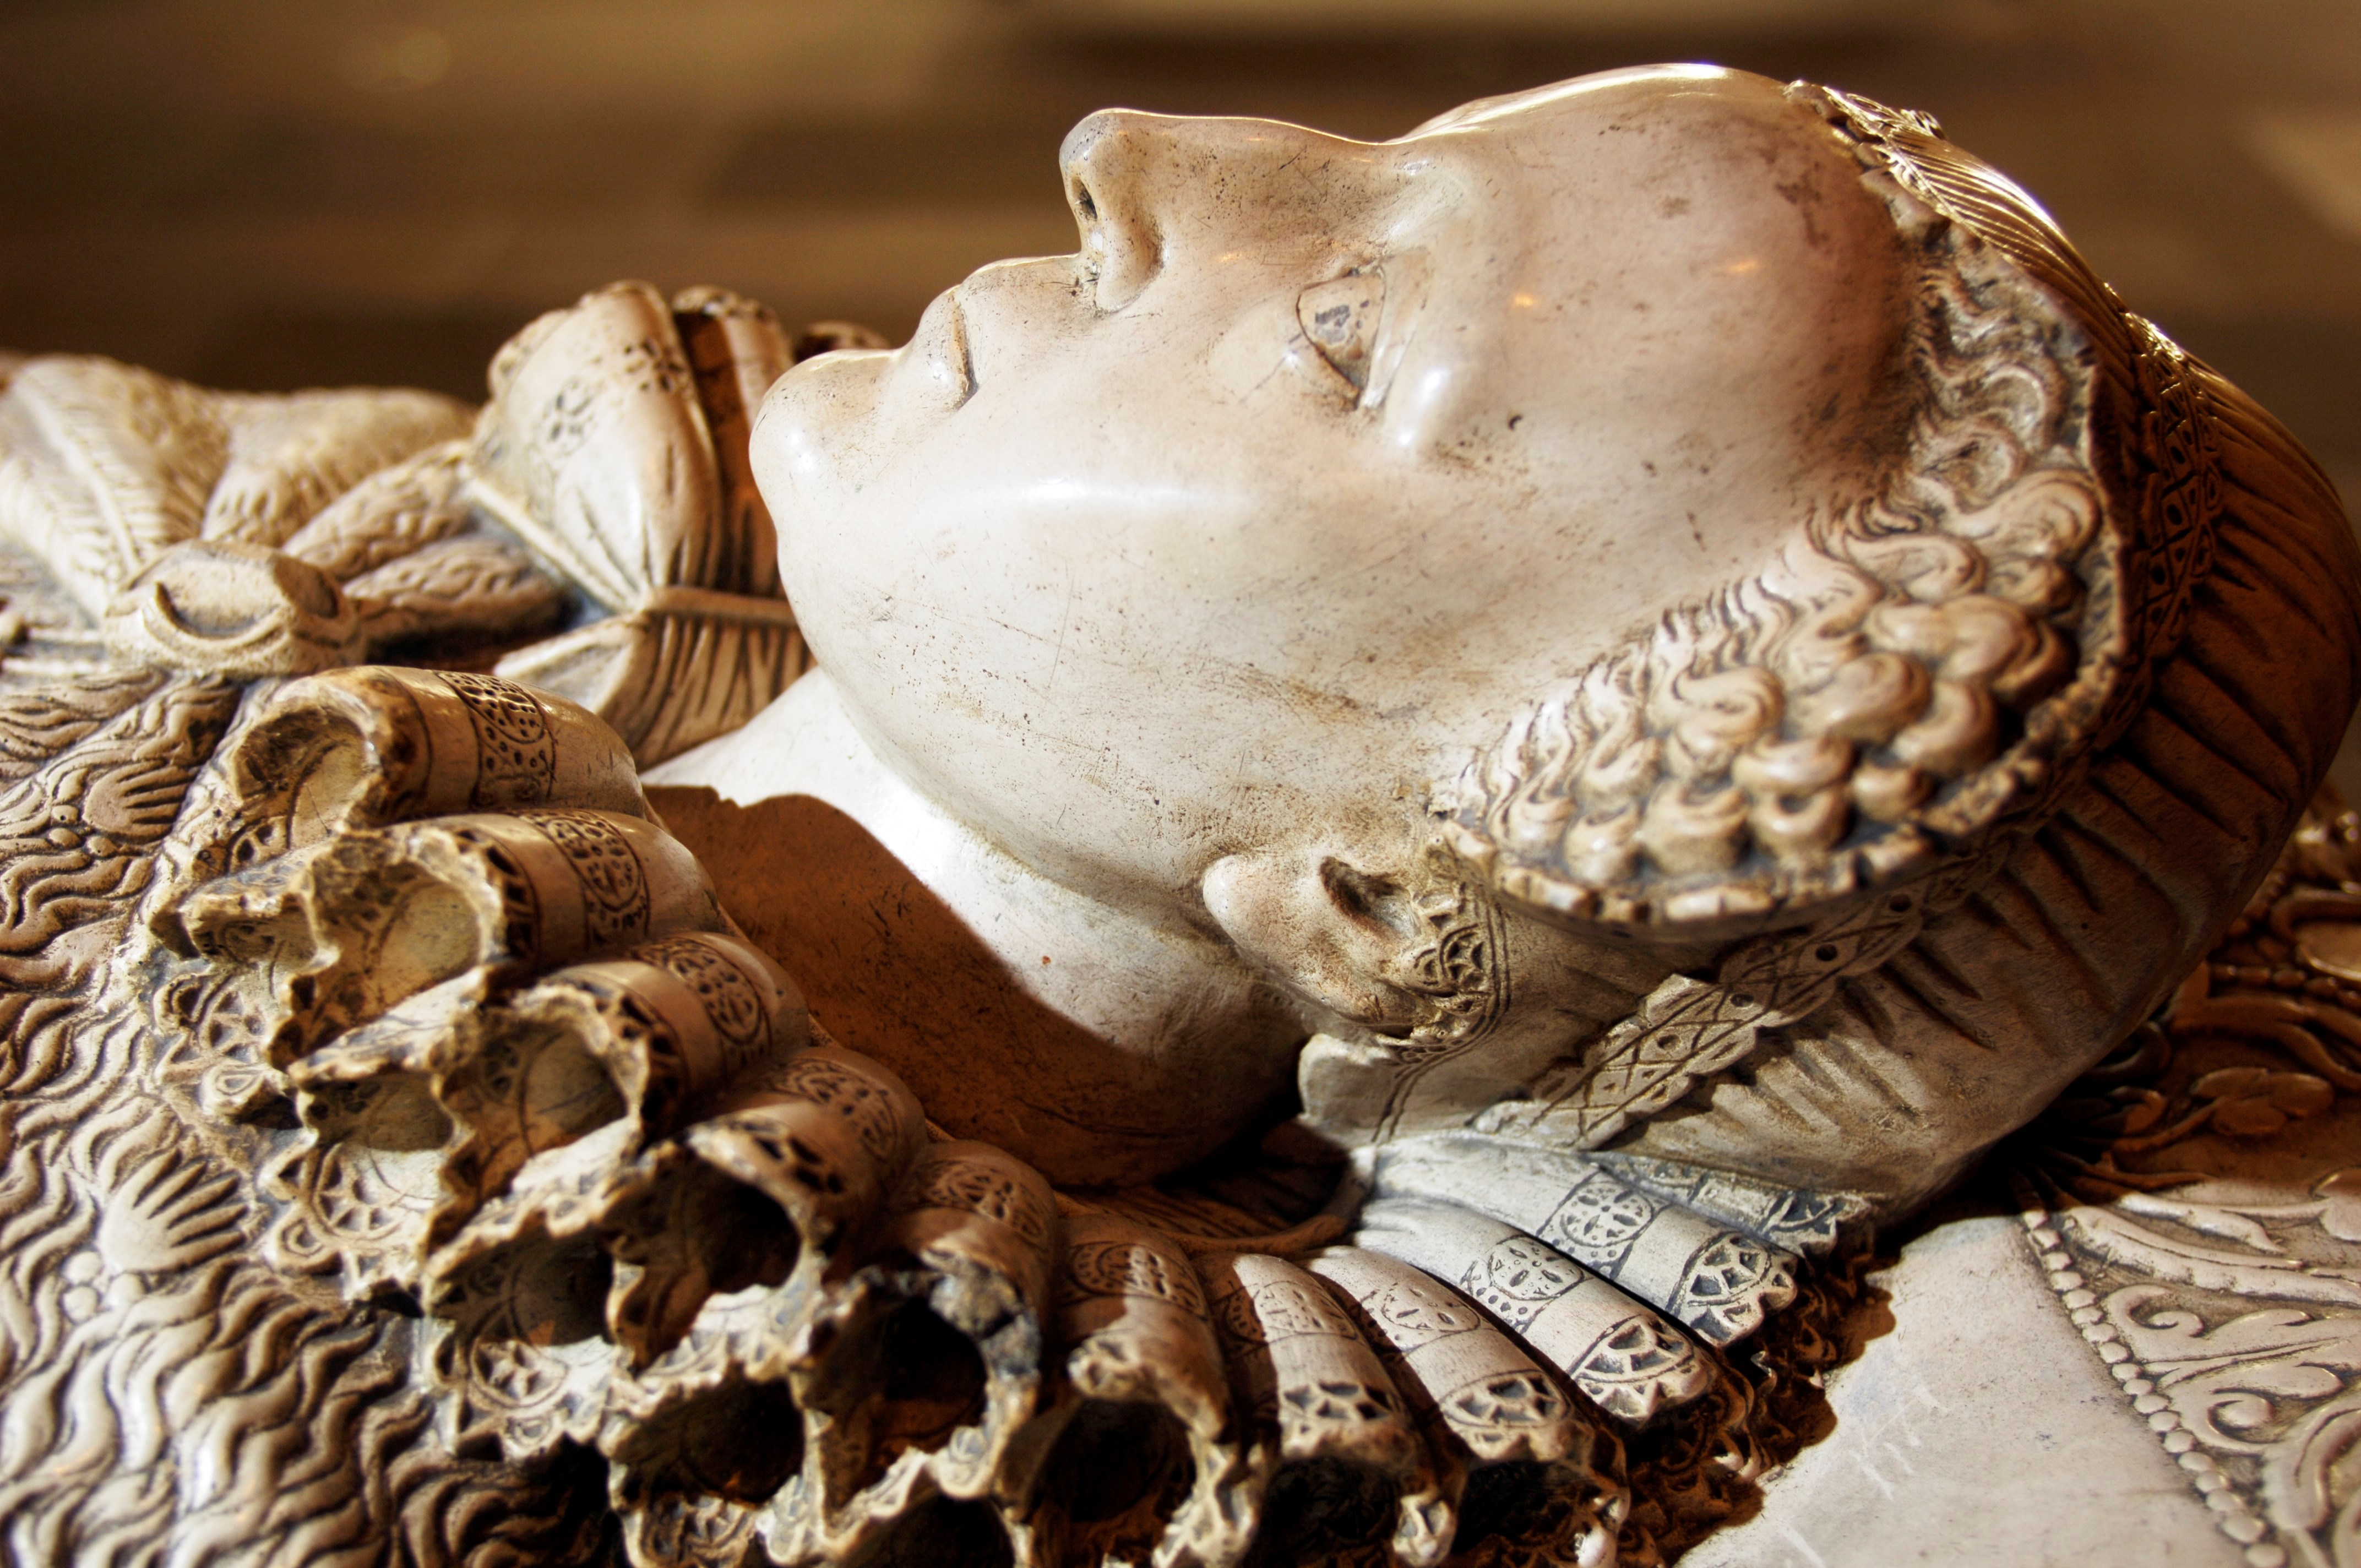 Replica of Mary, Queen of Scots' tomb in Westminster Abbey